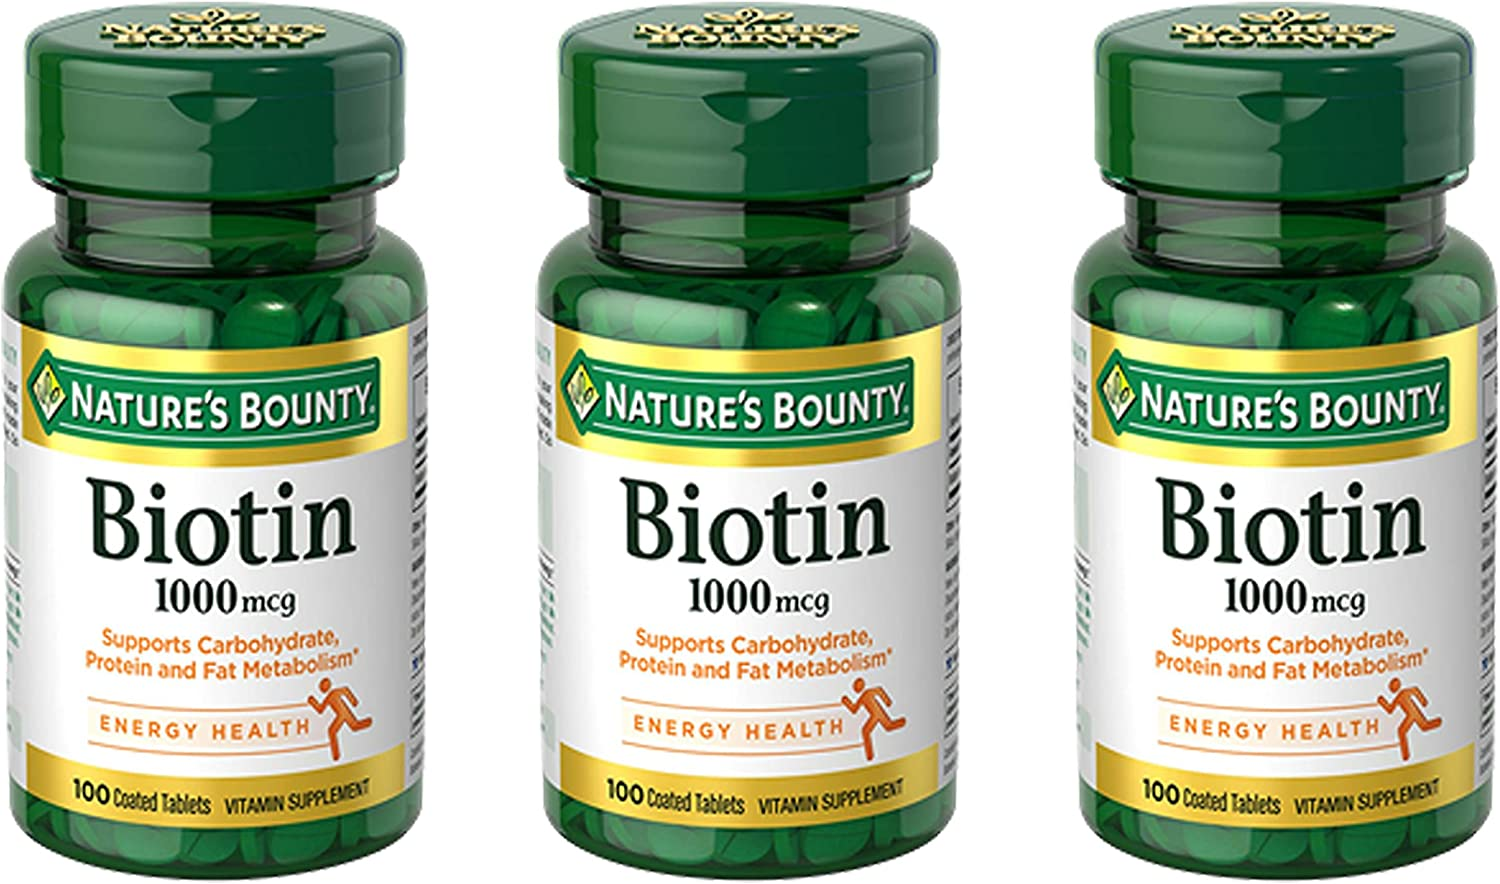 Nature's Bounty Biotin 1000 mcg Tablets 100 Count (Pack of 3)